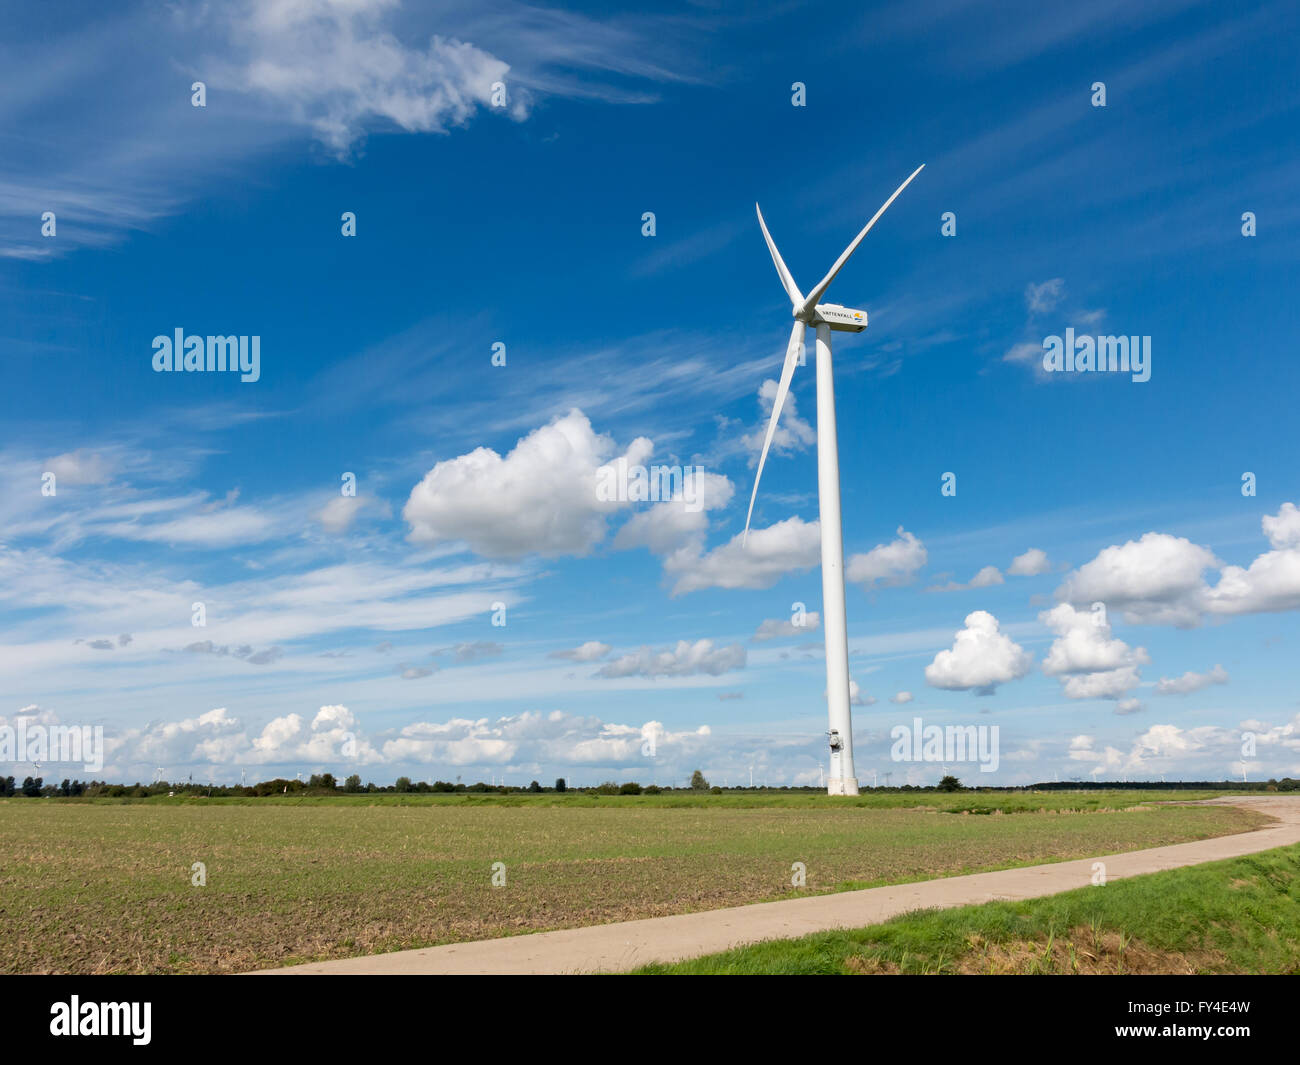 Wind power turbine in Flevoland polder in the Netherlands - Stock Image